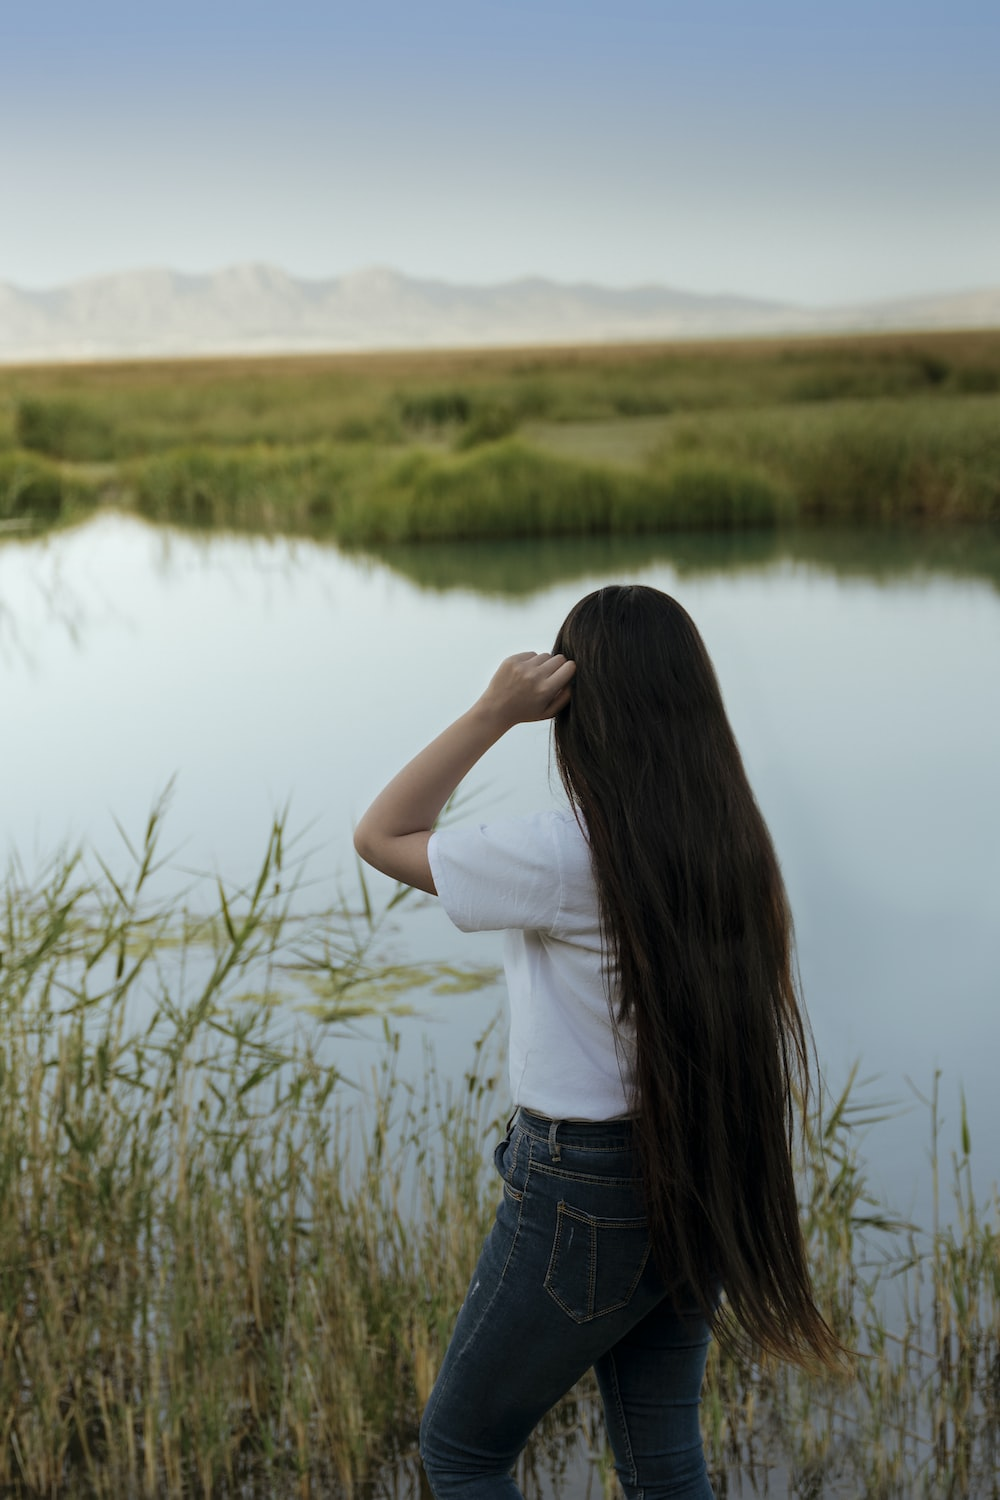 woman in white shirt and blue denim jeans standing near lake during daytime